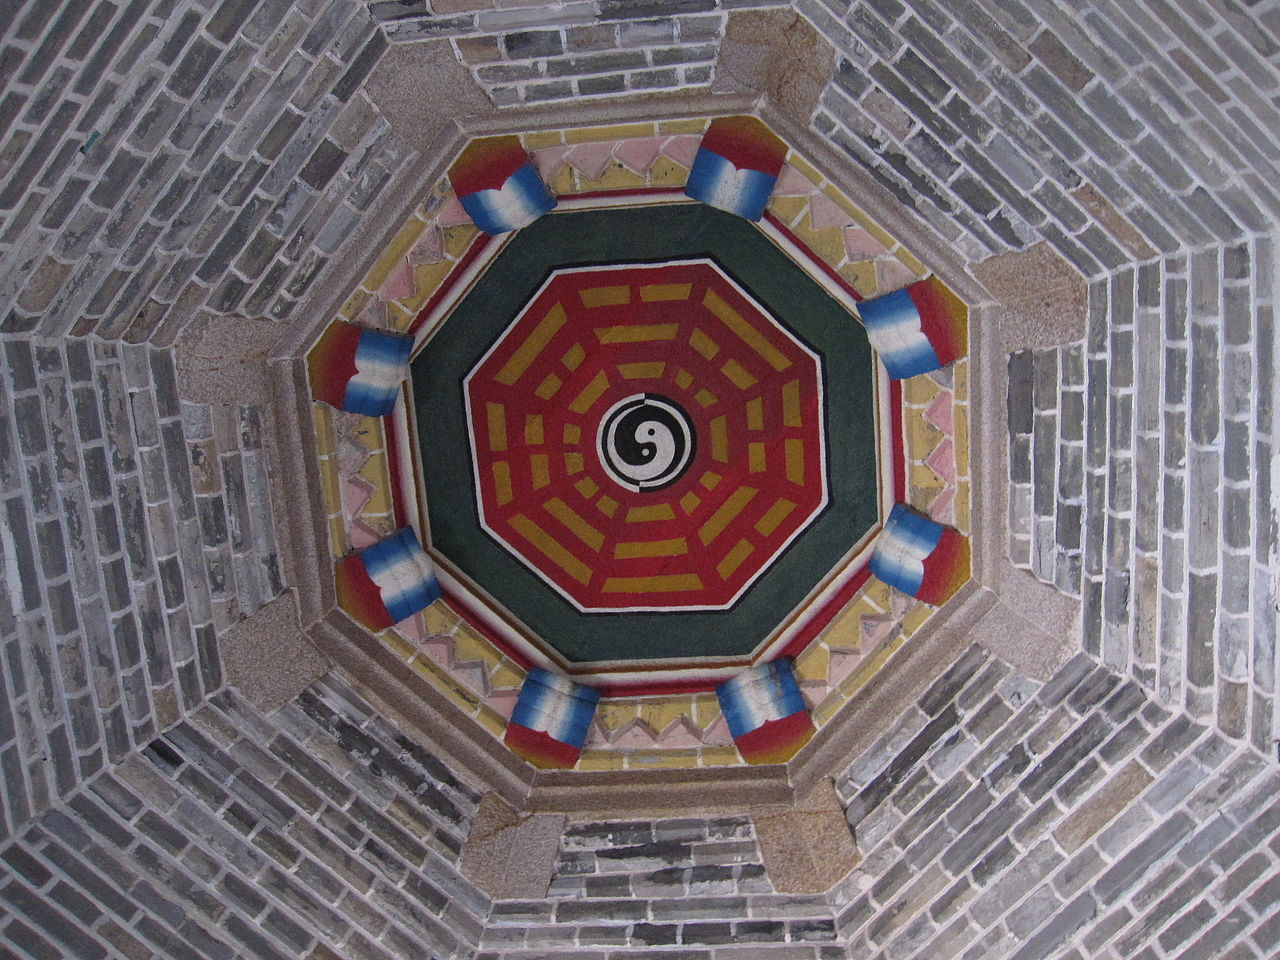 A zaojing depicting a taijitu surrounded by the bagua by Kunwi -  CC